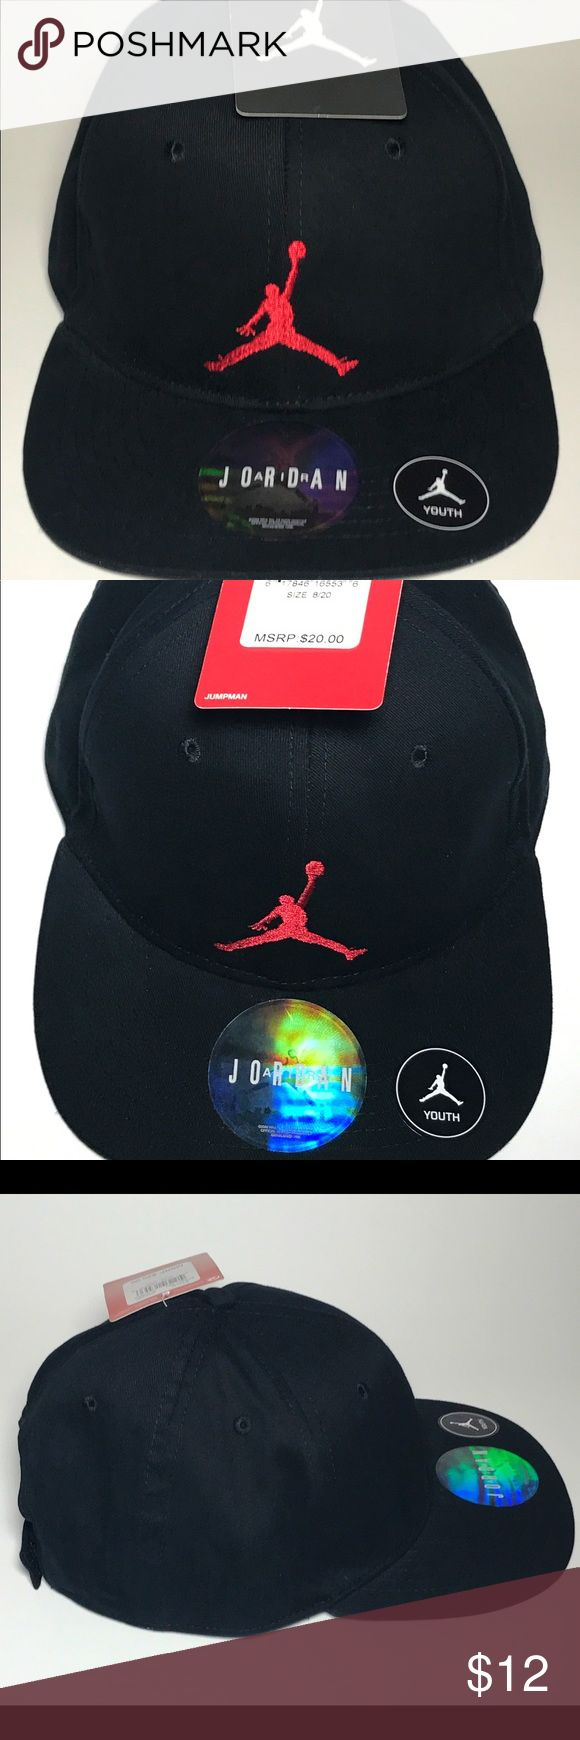 Nike Air Jordan Youth Adjustable Hat Black/Red The hat is brand new with tags. Never worn. Great for summer! Jordan Accessories Hats